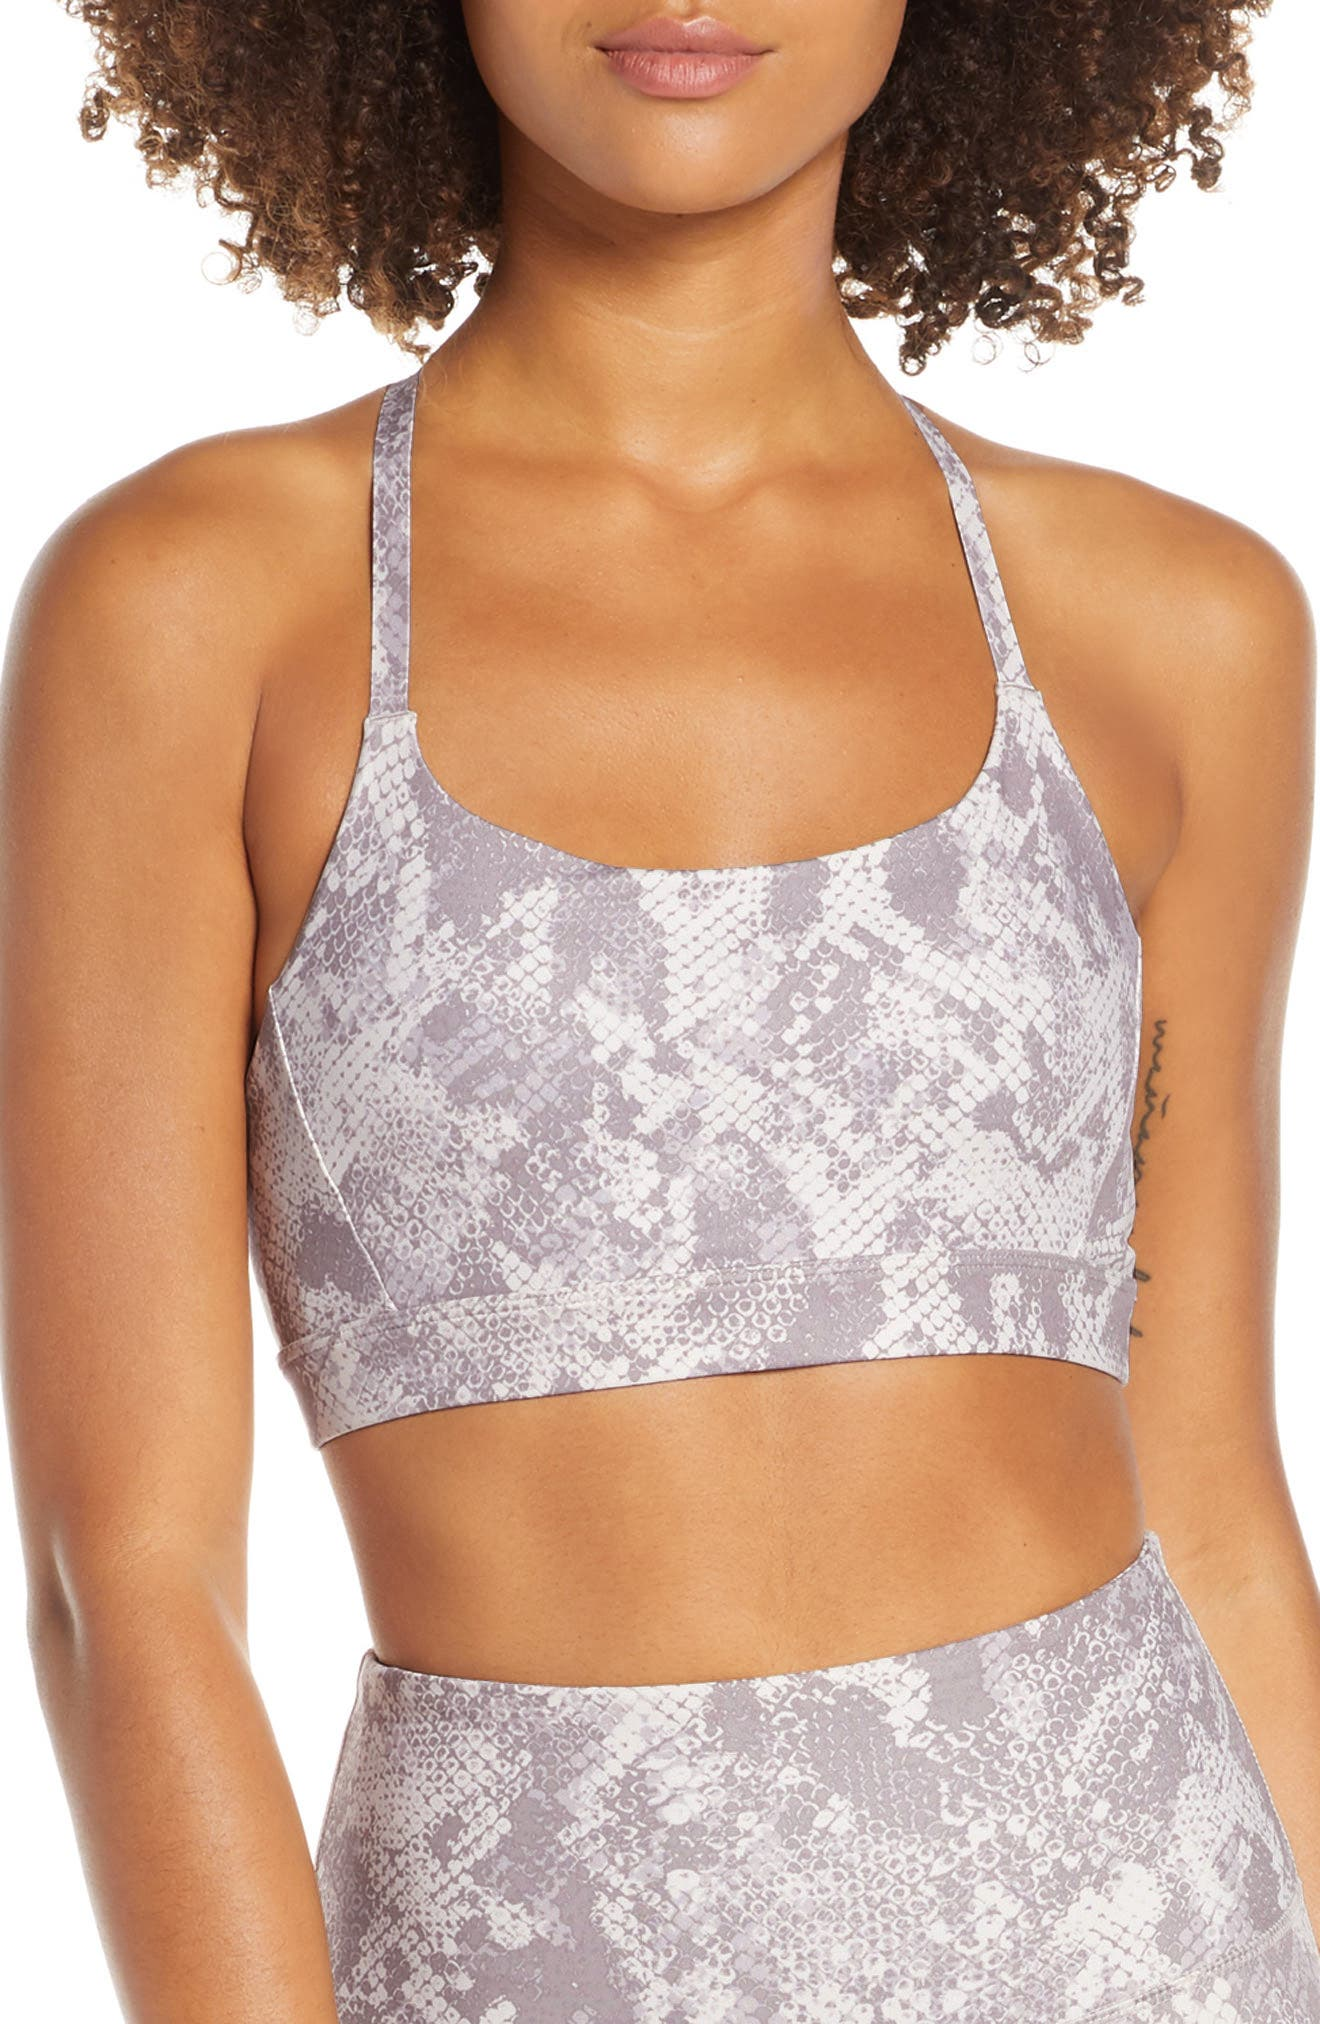 Zella Know Your Angle Sports Bra